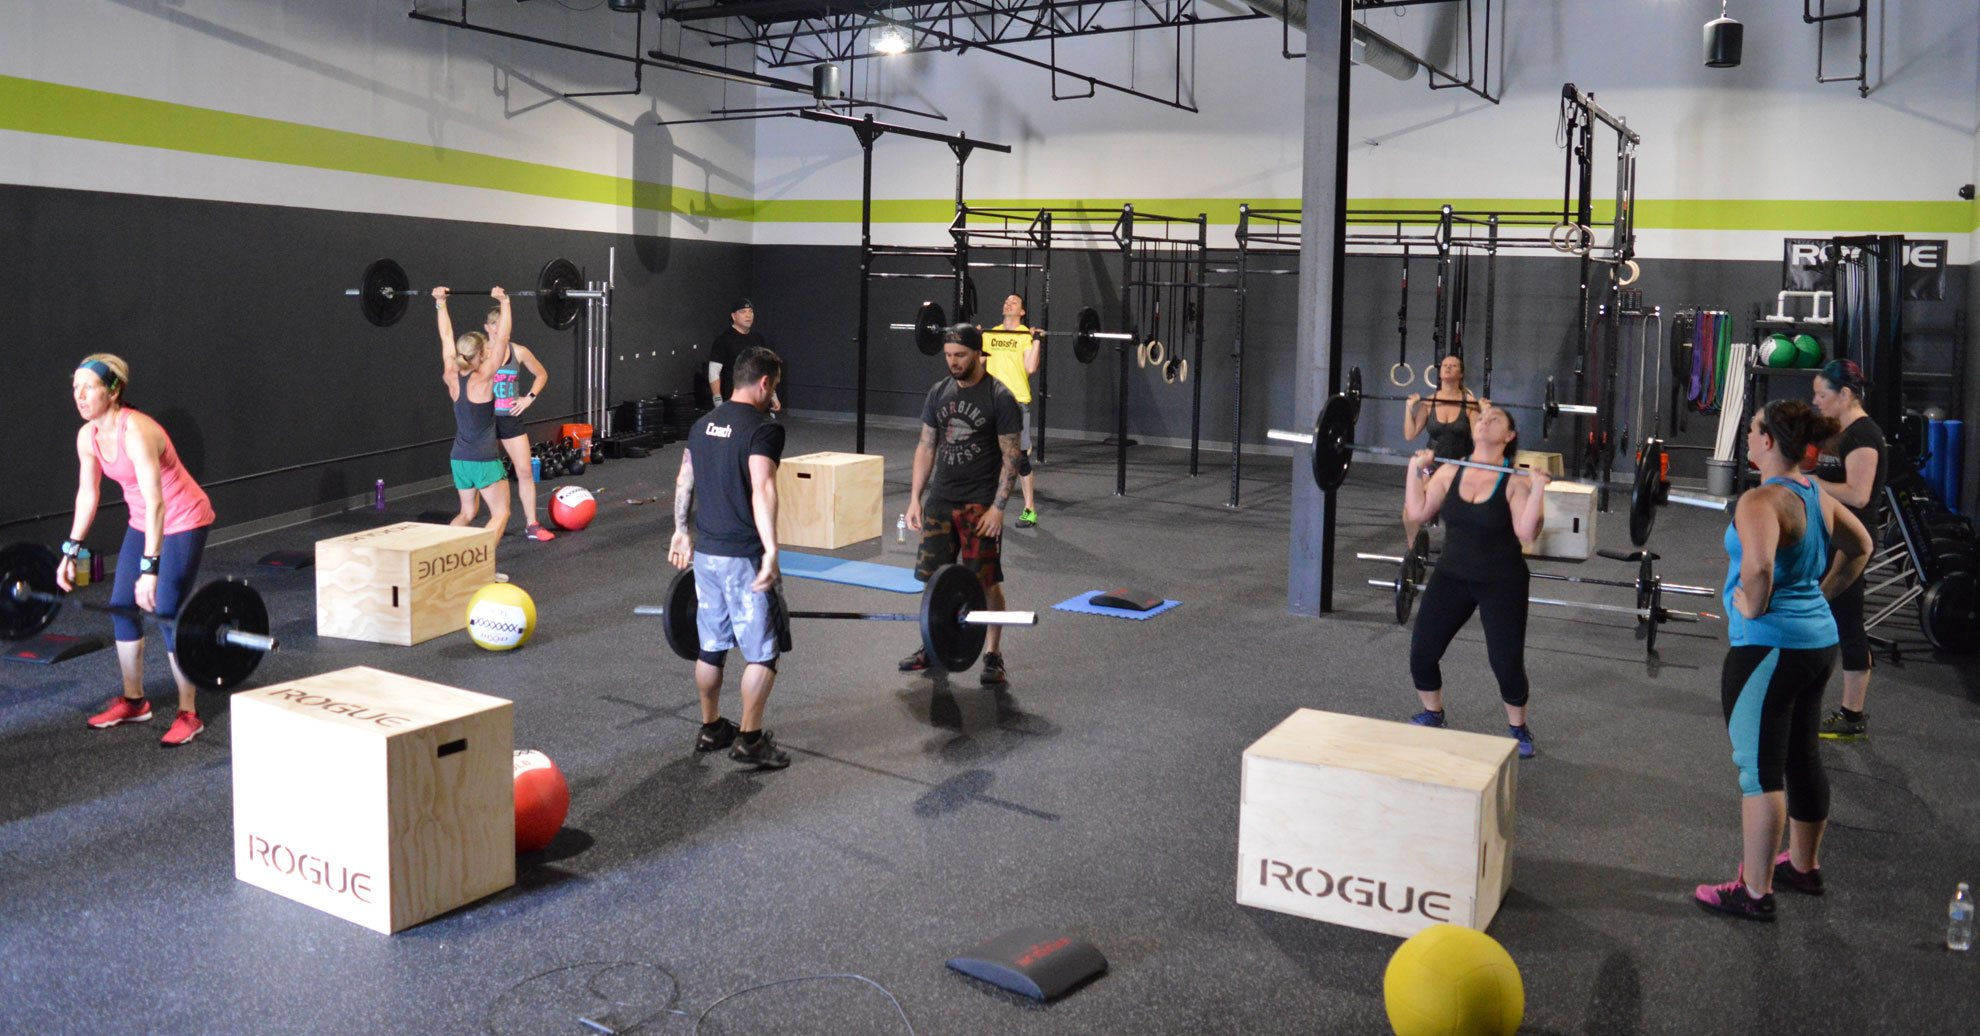 CrossFit Classes are A Perfect Way to Get Started in Fitness and Health